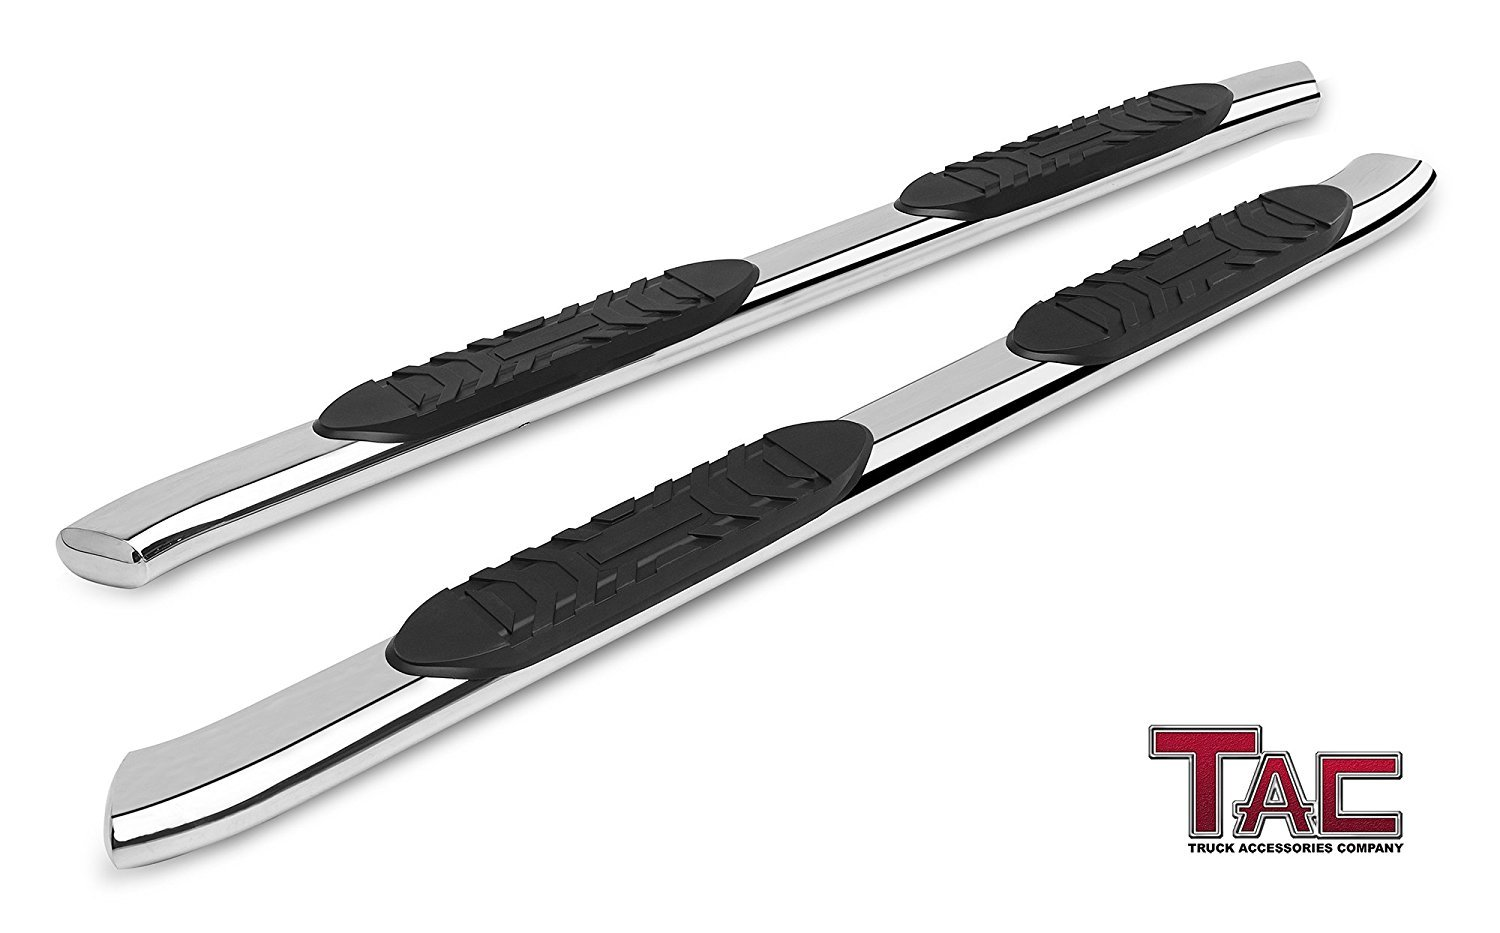 2 Pieces TAC Side Steps Fit 2007-2019 Toyota Tundra Double Cab Truck Pickup 5 Premium Oval Bend T304 Stainless Steel Side Bars Nerf Bars Step Rails Running Boards Off Road Exterior Accessories